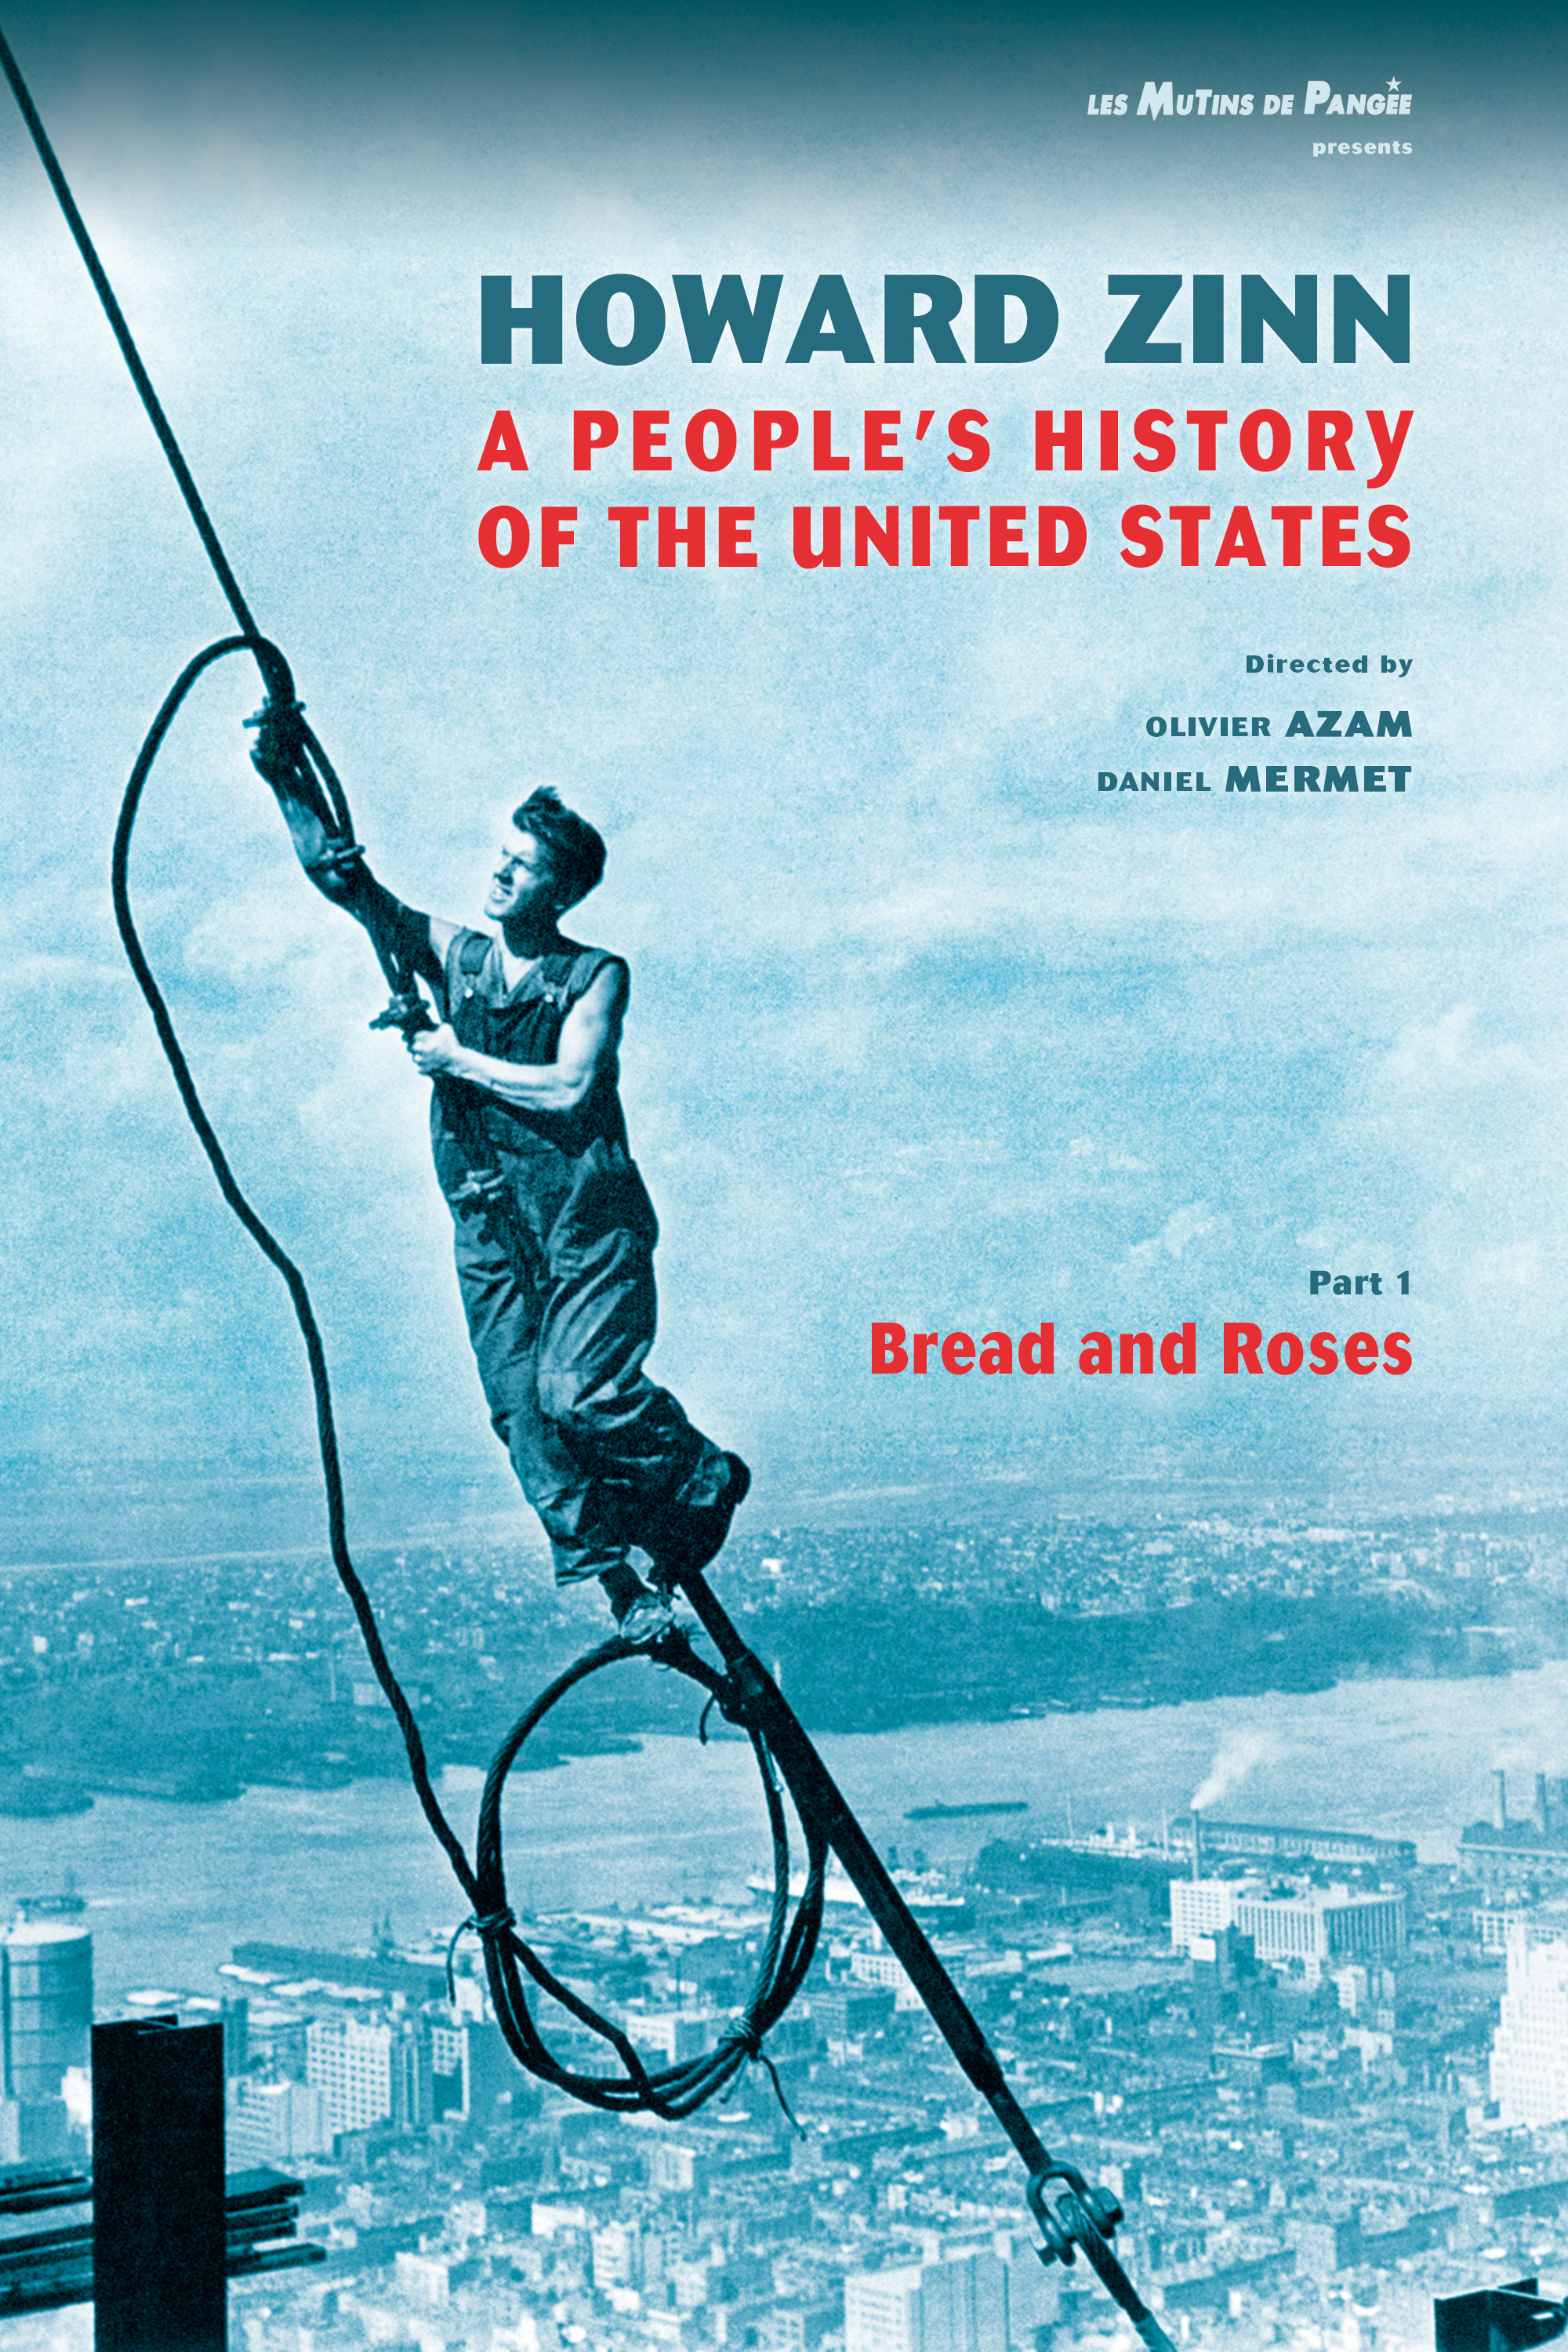 Howard Zinn: A People's History of the United States - Part 1: Bread and Roses